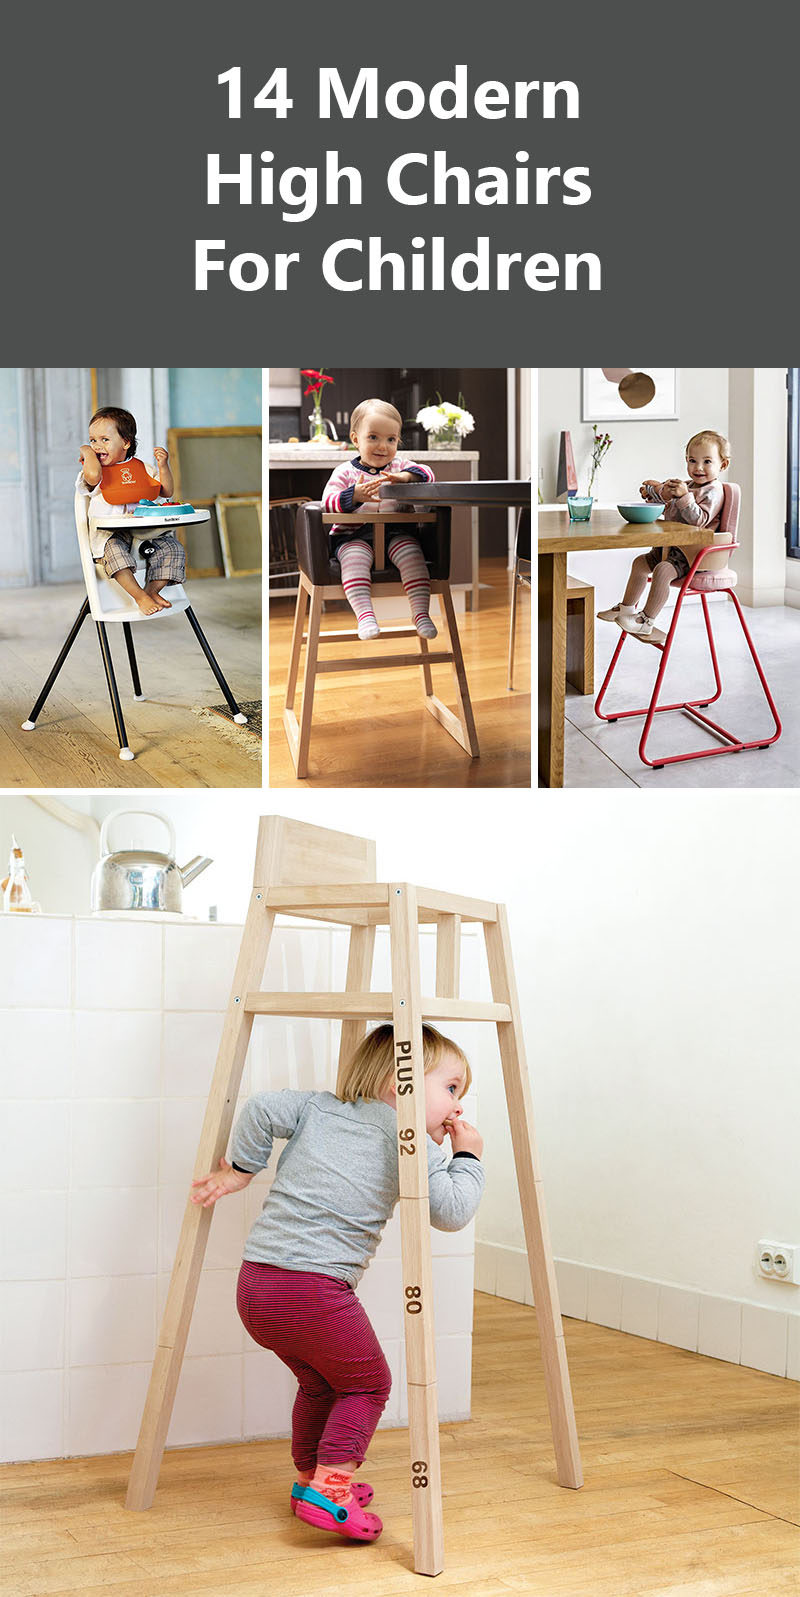 modern high chairs for children  contemporist - get the contemporist daily email newsletter – sign up here  modern highchairs